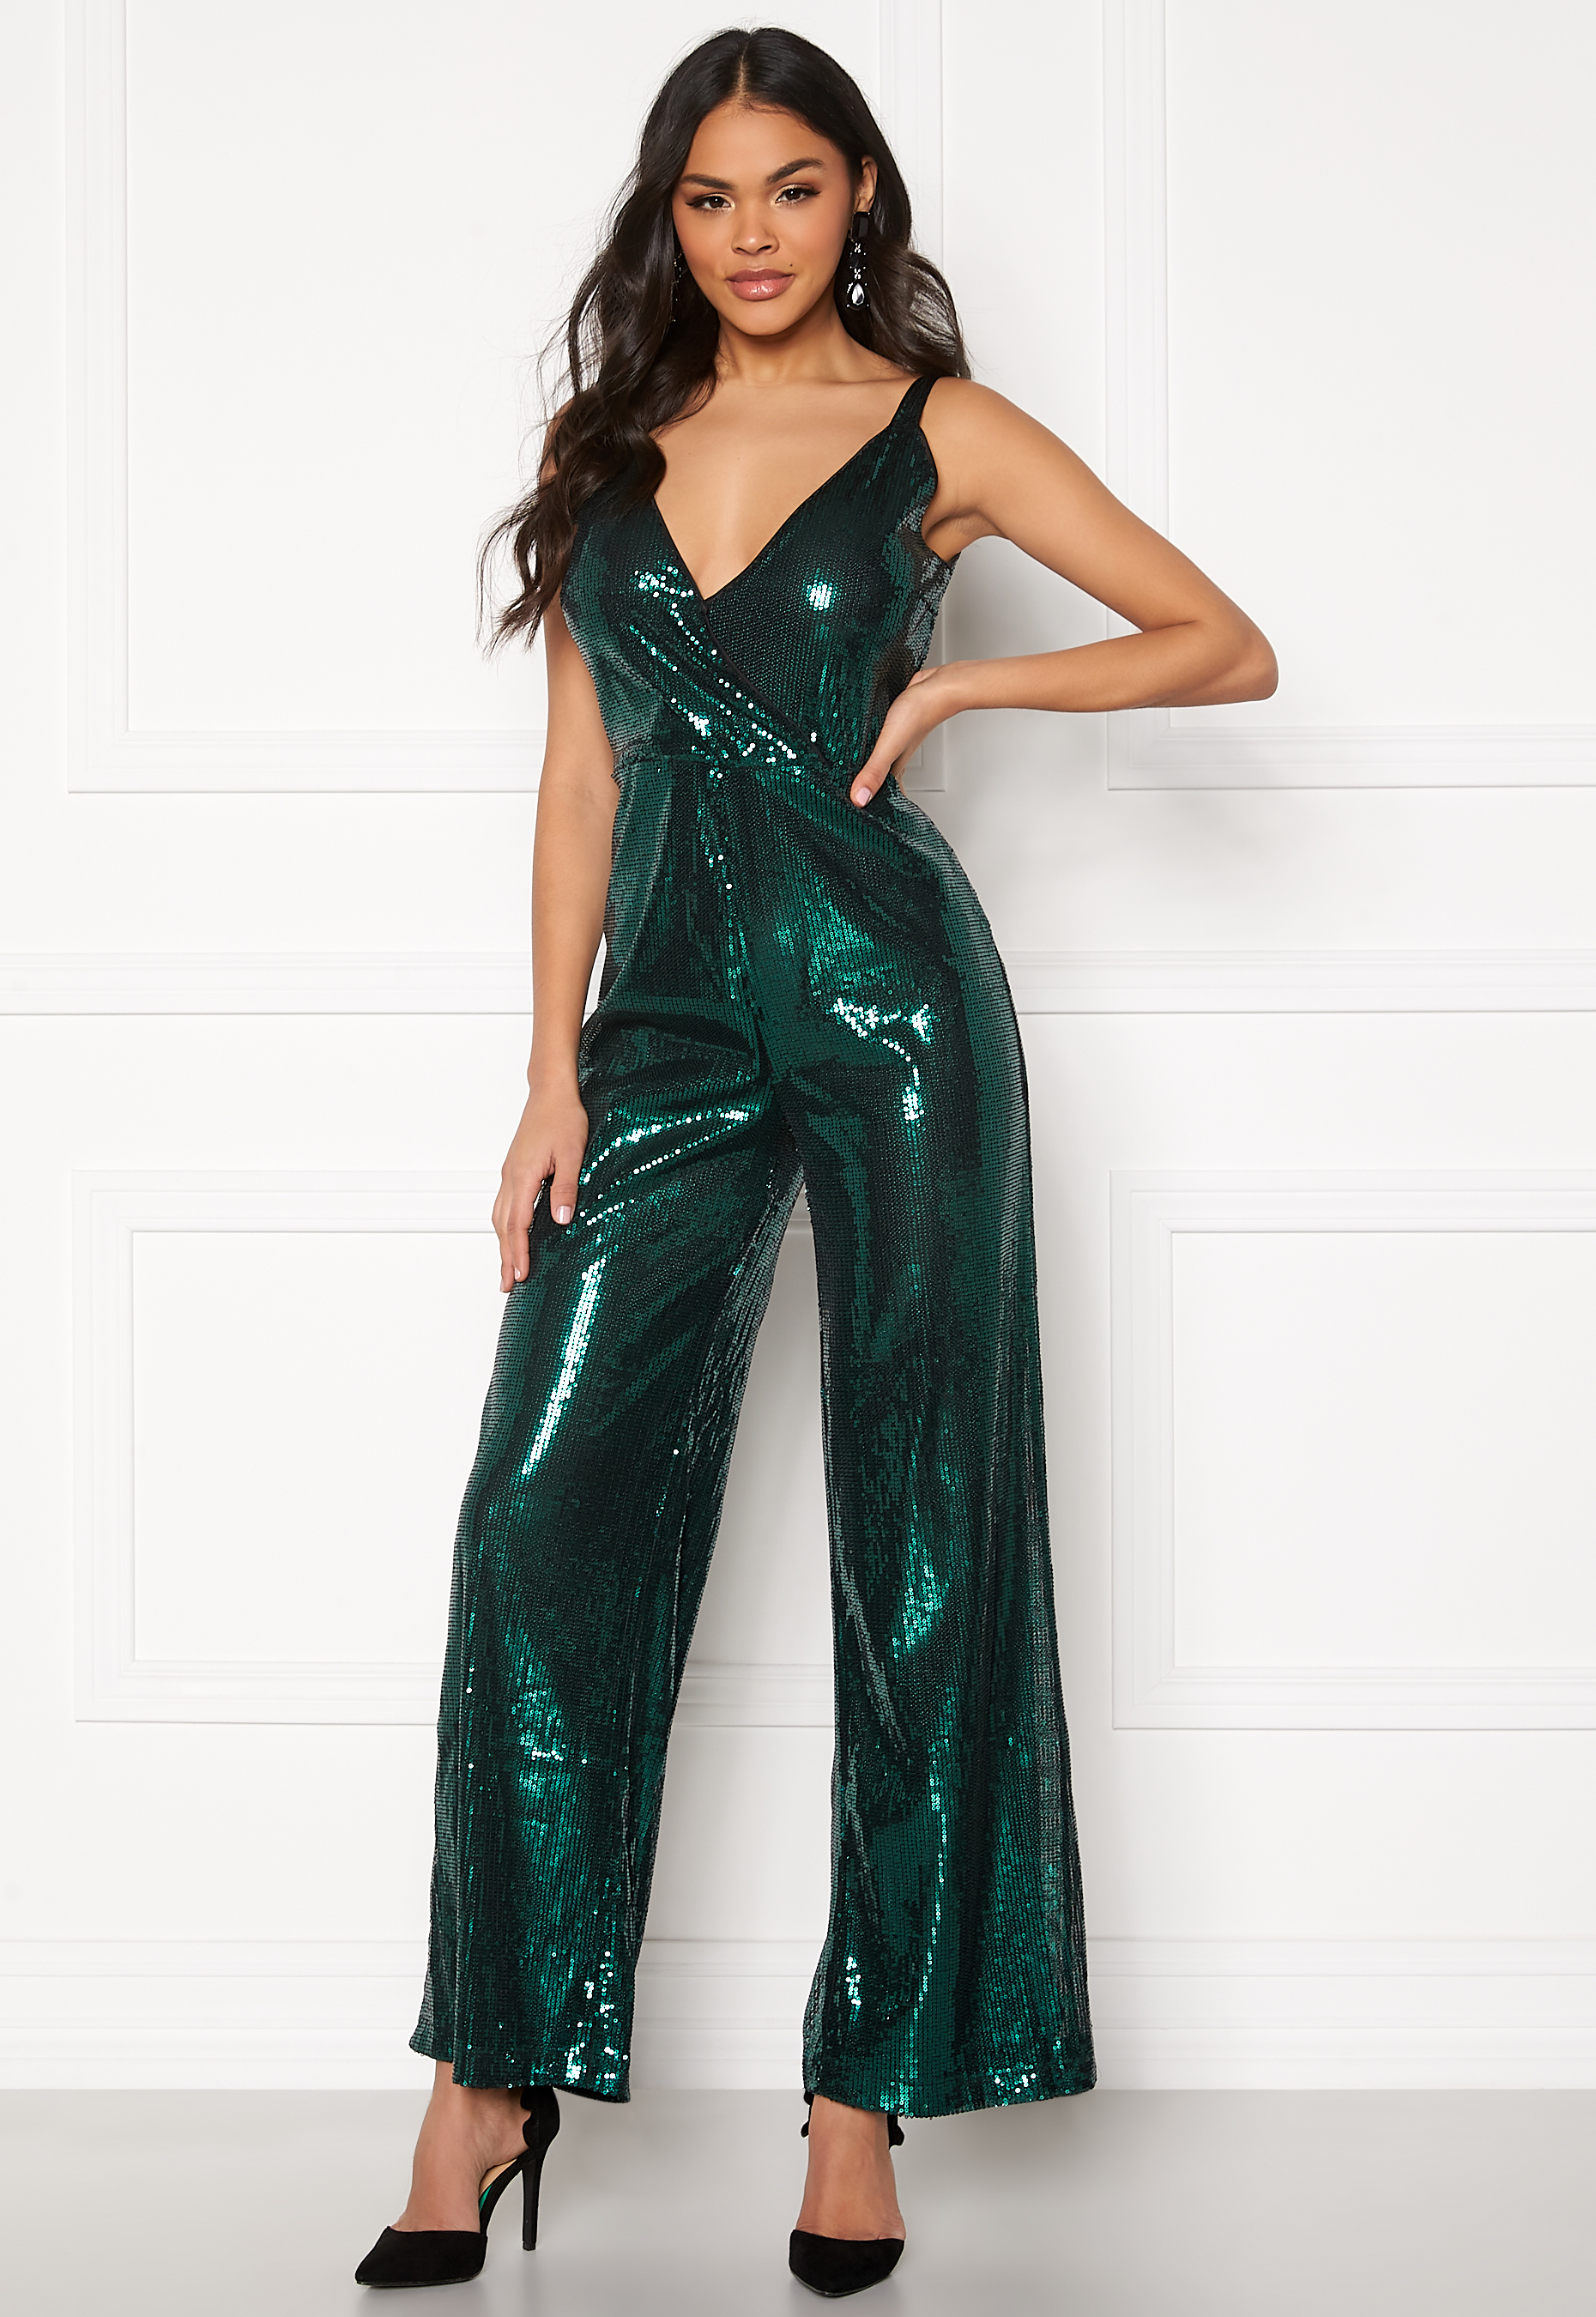 Green Sequin Jumpsuit  Ivyrevel  Jumpsuit - Dameklær er billig